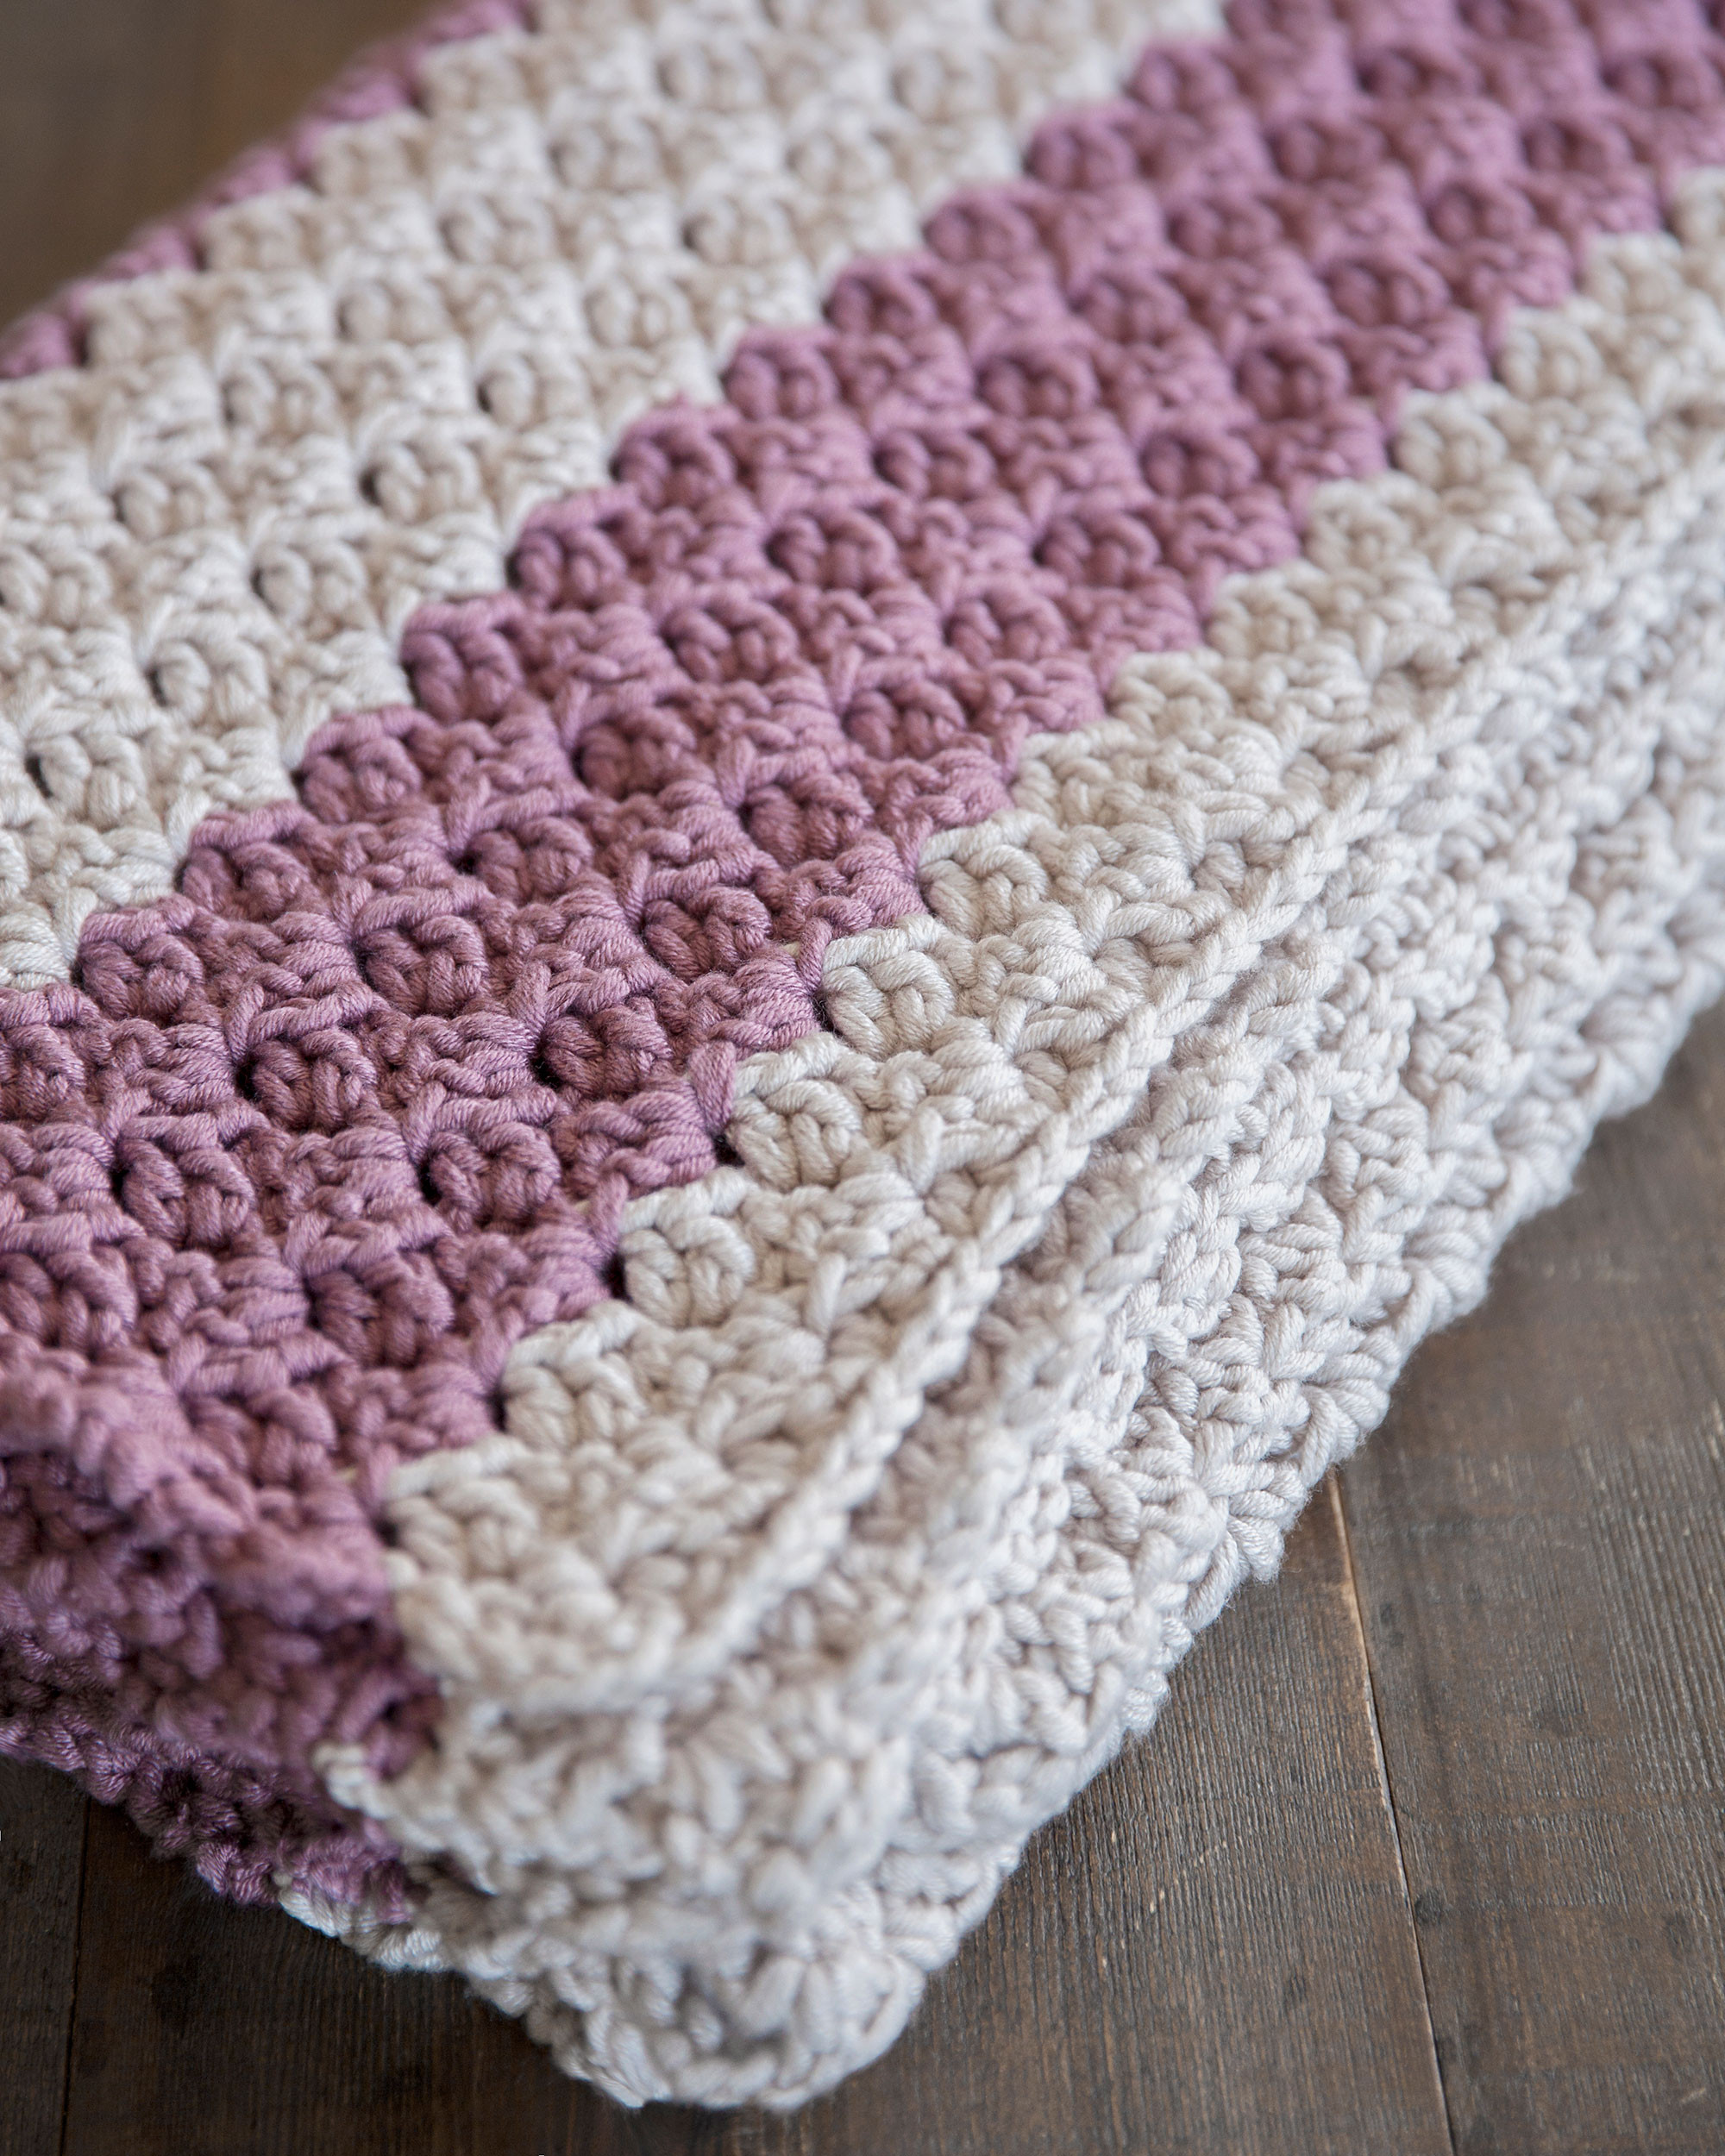 Crochet Afghan Patterns with Pictures Lovely Free Chunky Crochet Throw Pattern Leelee Knits Of Gorgeous 43 Photos Crochet Afghan Patterns with Pictures